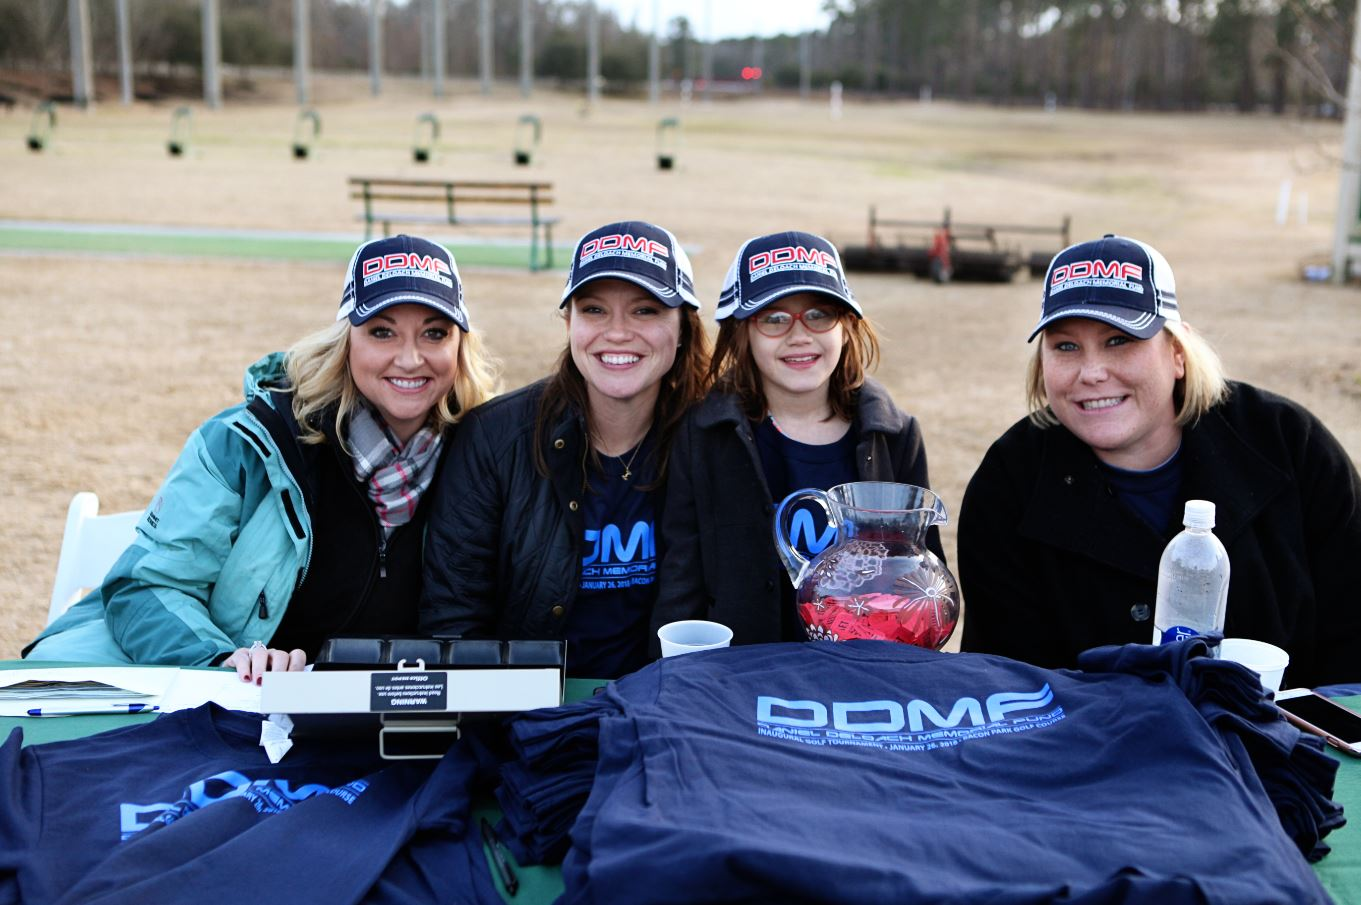 Daniel DeLoach Memorial Golf Tournament gallery image #11